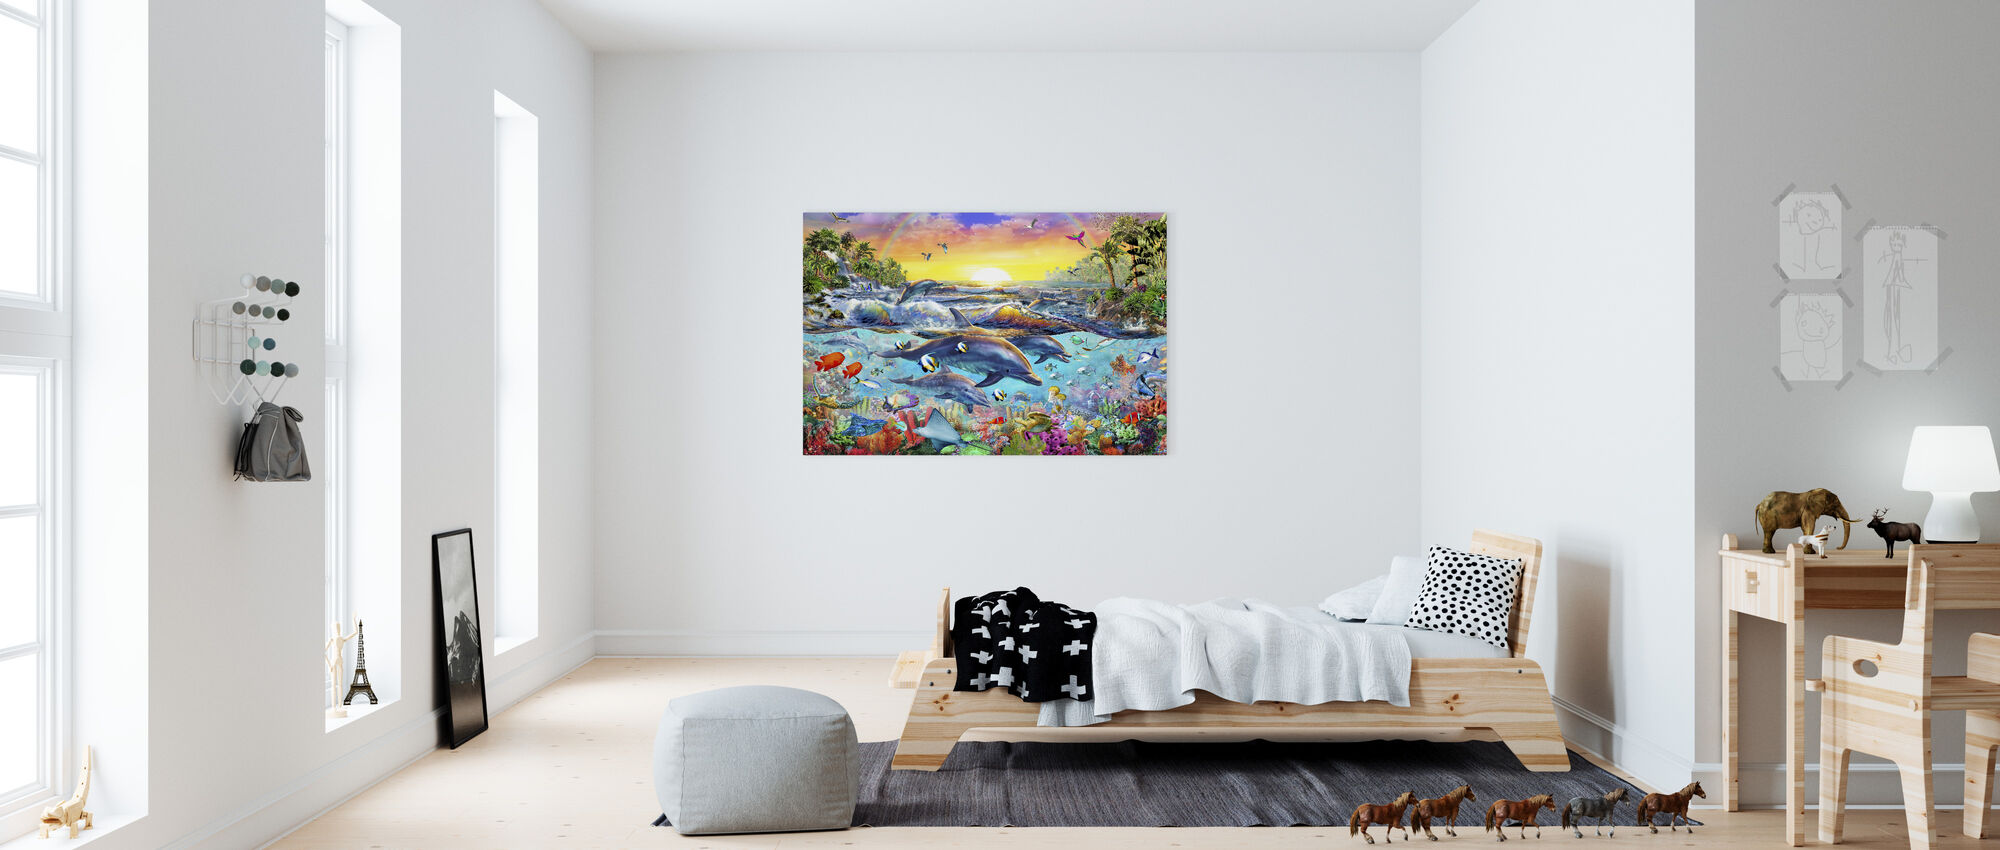 Tropical Cove - Canvas print - Kids Room